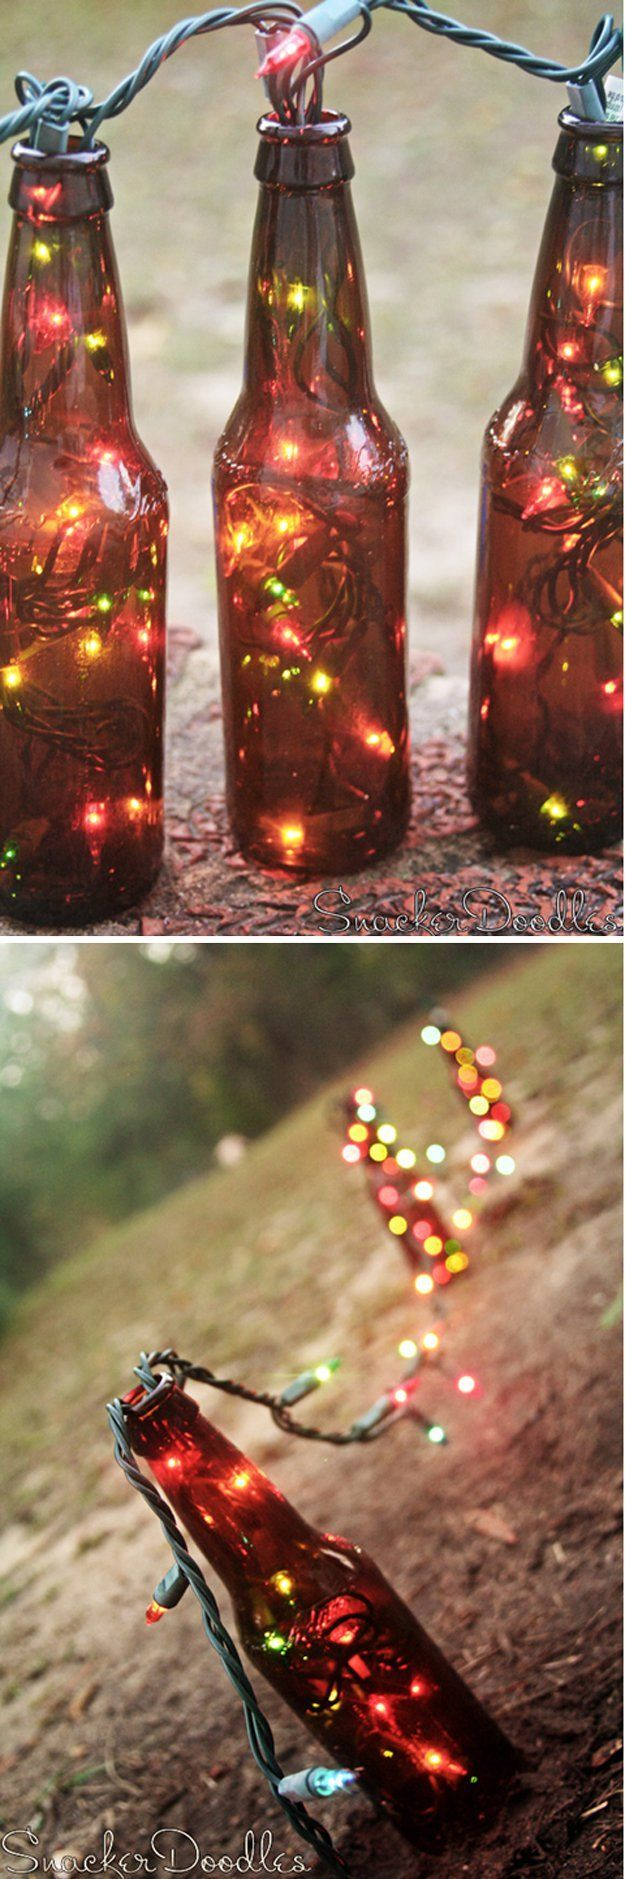 Repurpose your empties and turn them into festive Beer Bottles Christmas Lights for the holidays. Get more creative uses for beer bottles from @diyready.